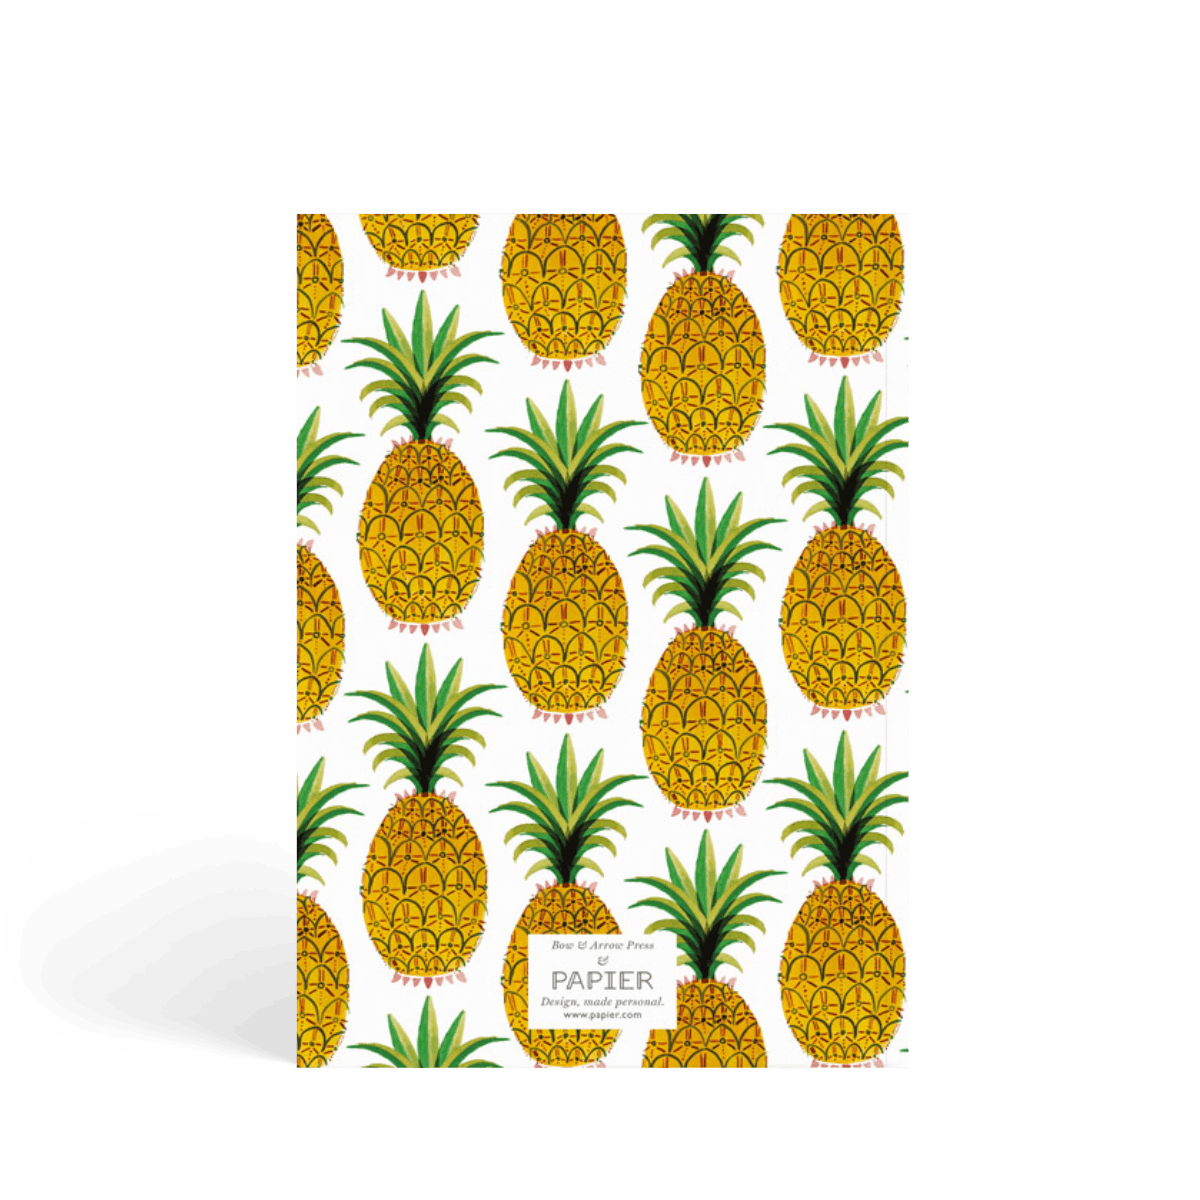 Https%3a%2f%2fwww.papier.com%2fproduct image%2f56564%2f5%2fpineapple 13583 back 1542369902.png?ixlib=rb 1.1